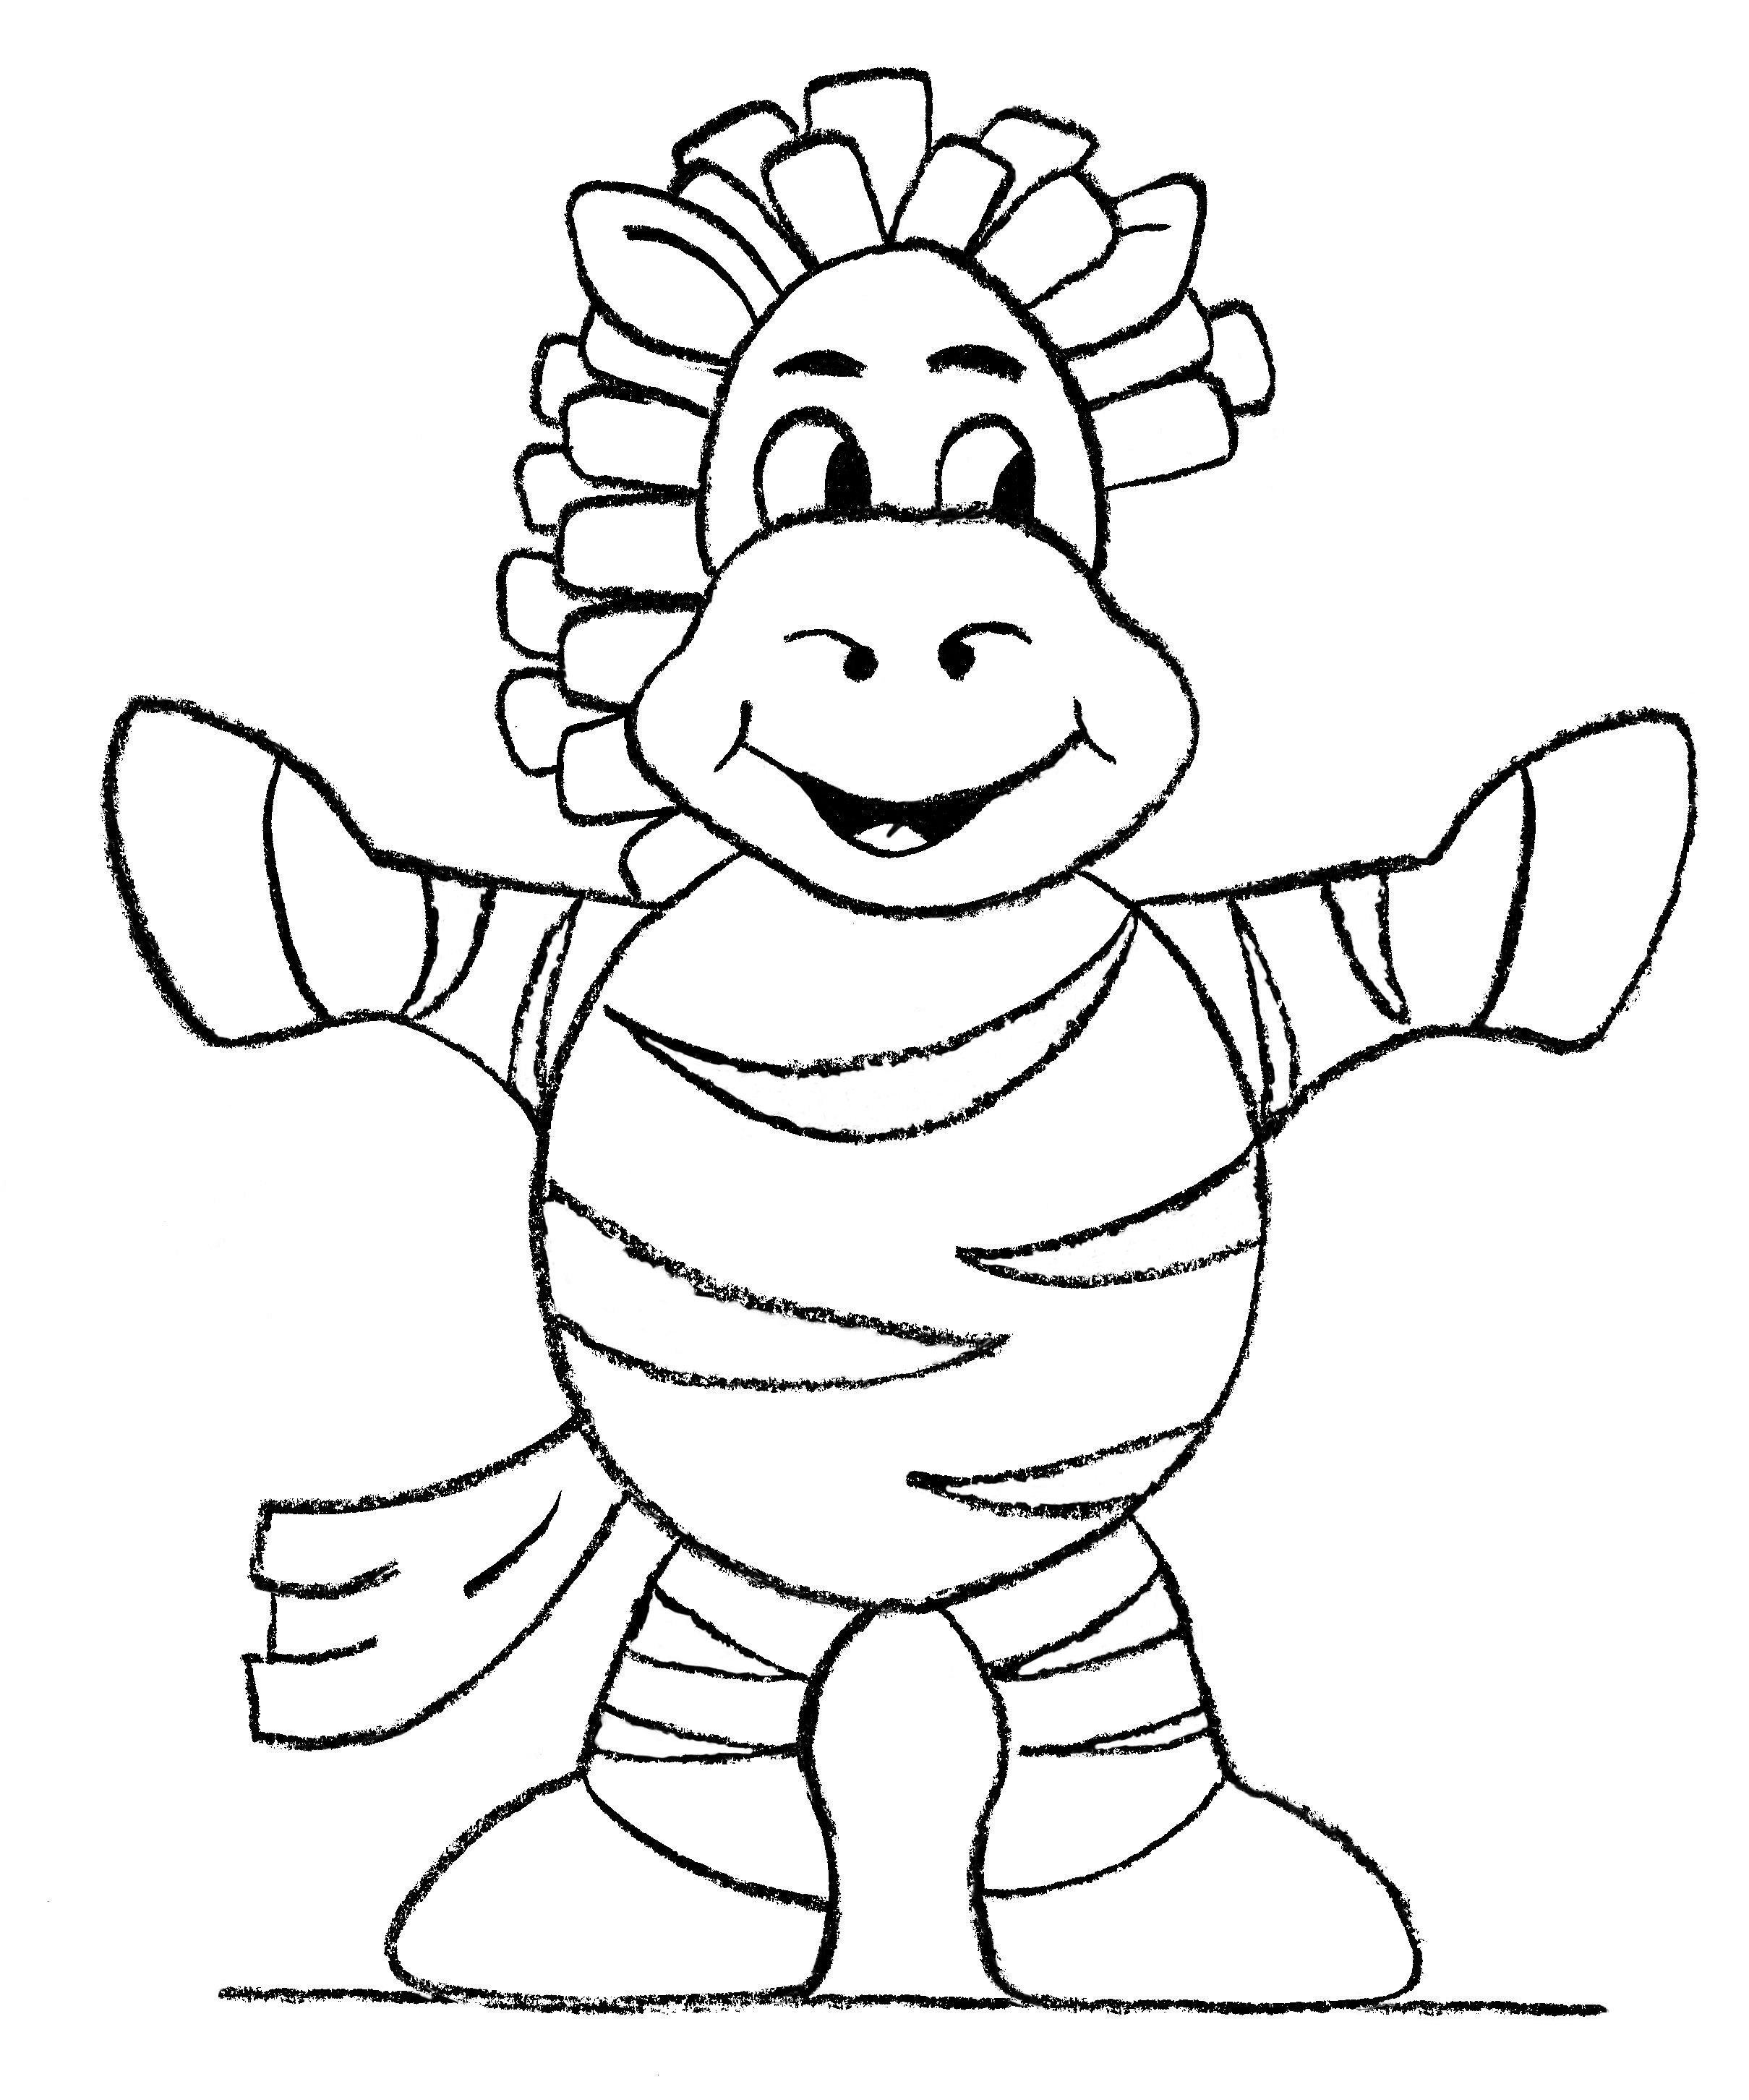 Anansi The Spider Coloring Pages